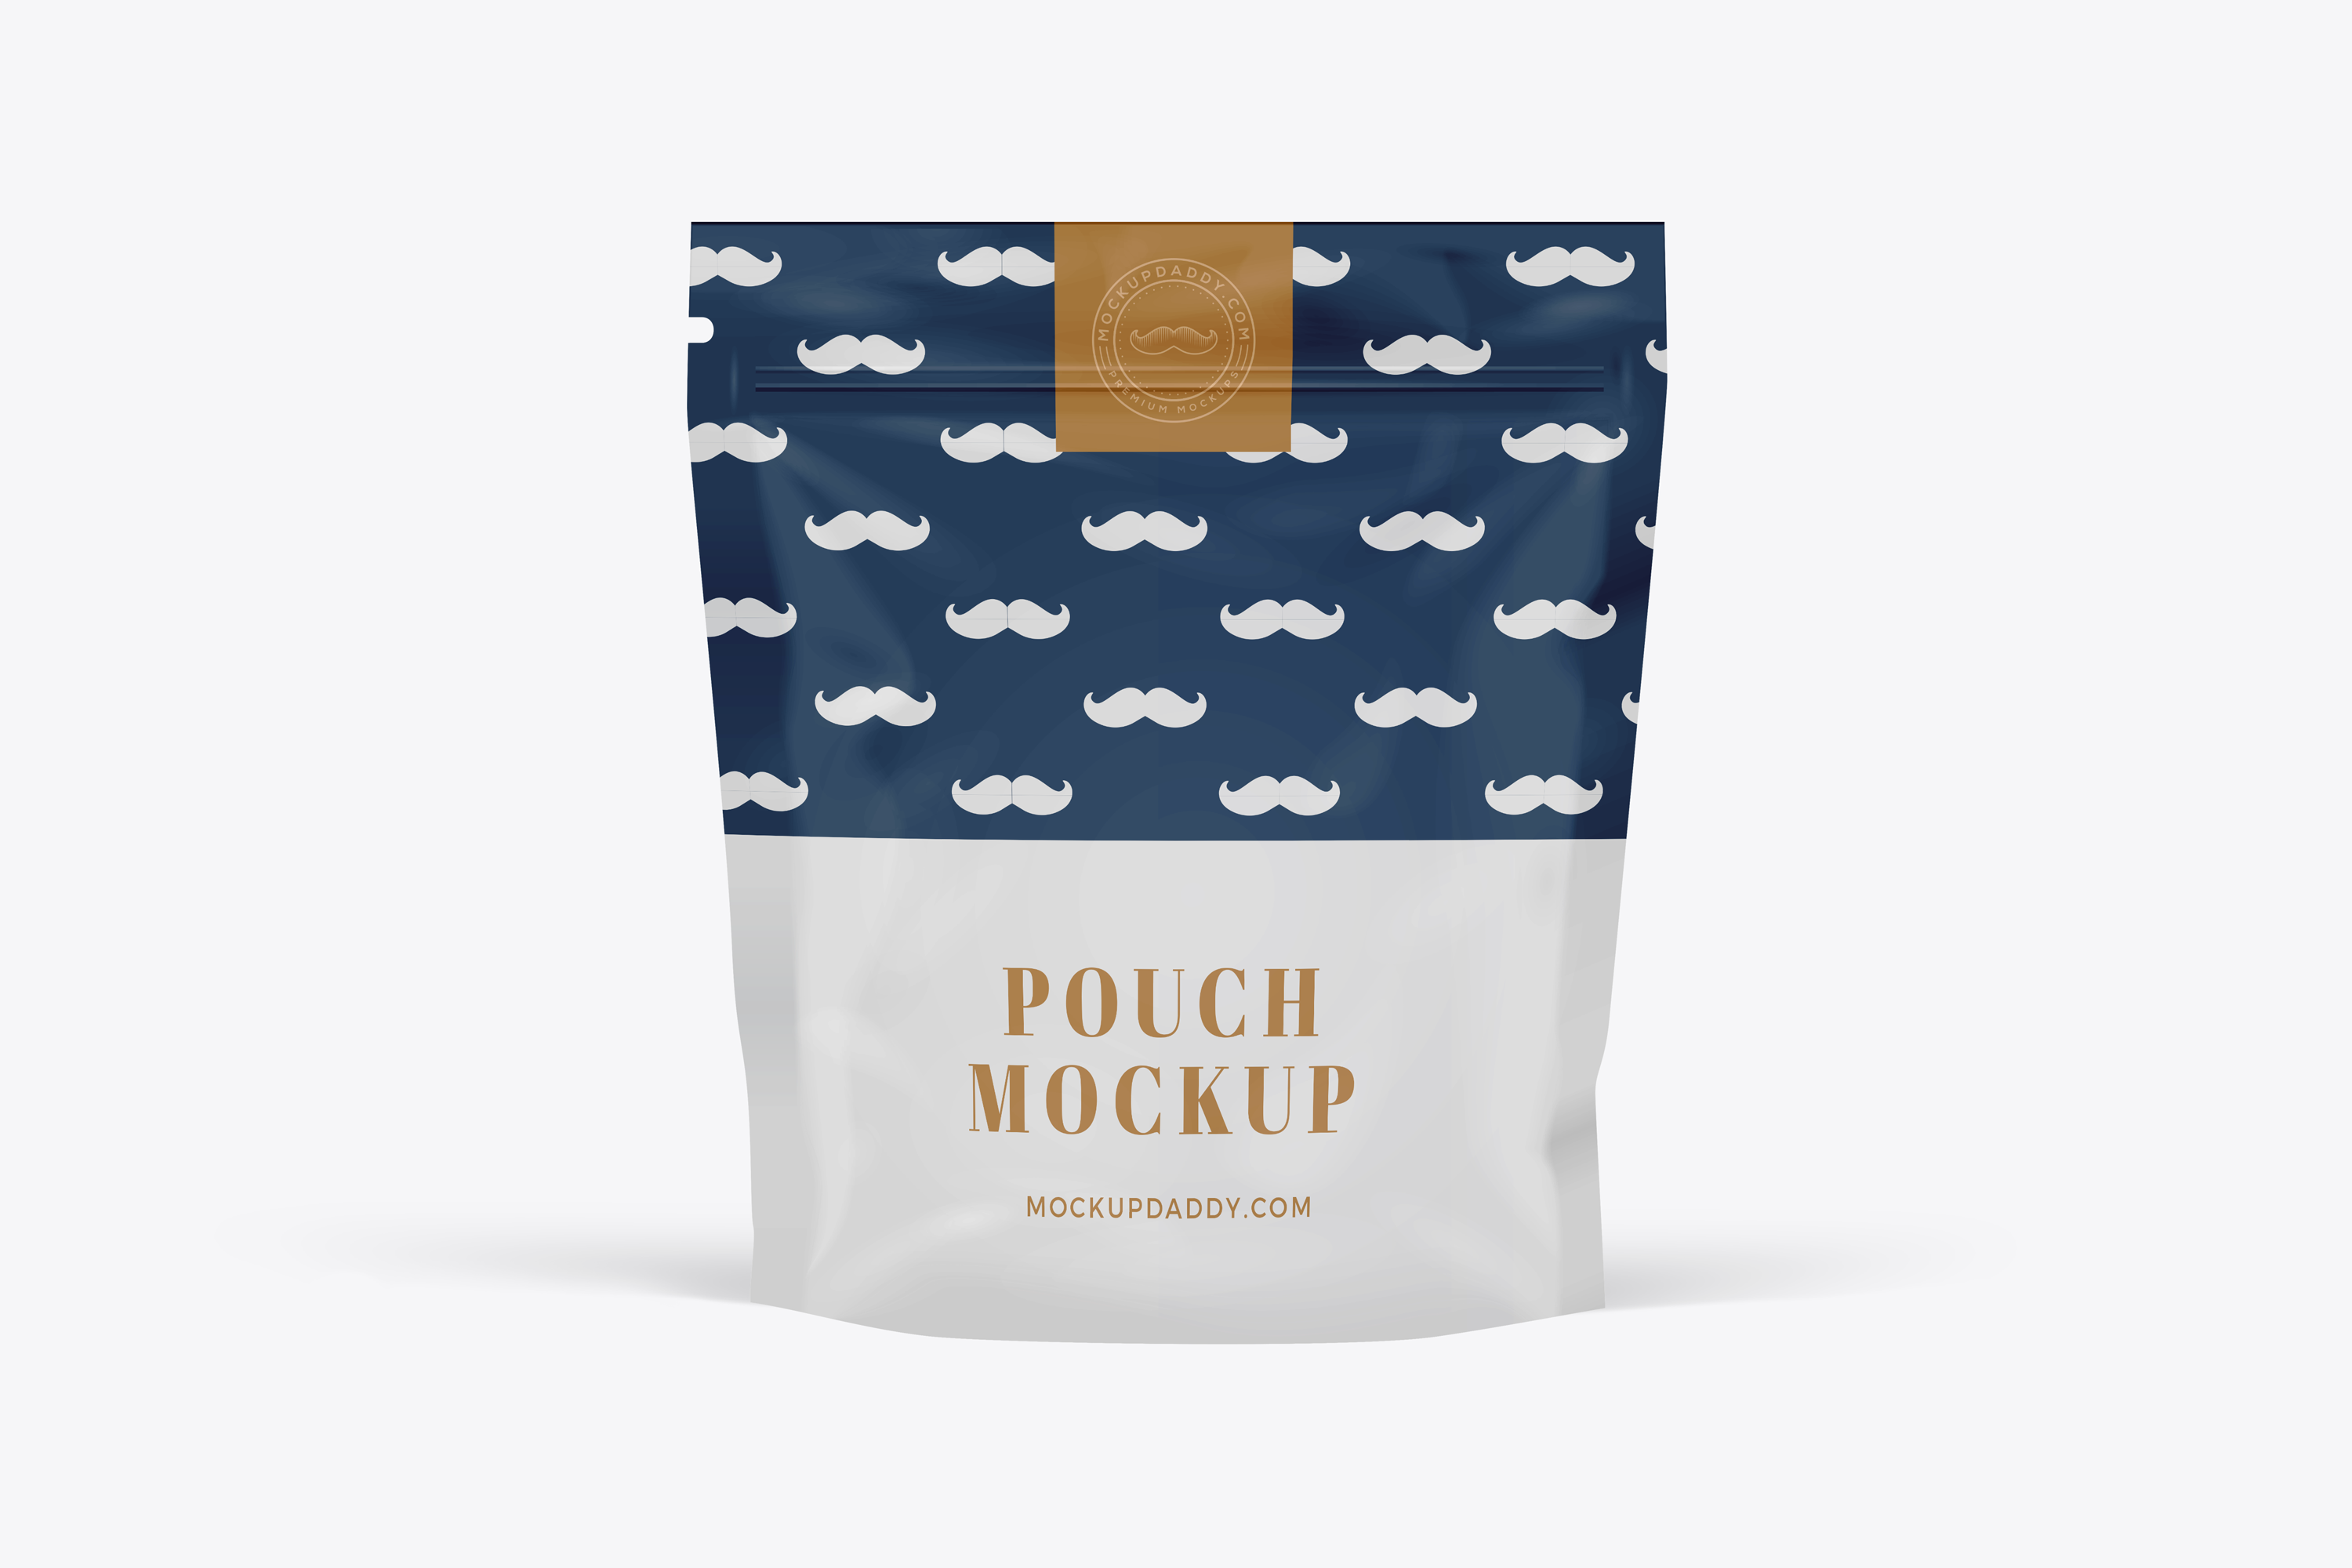 Stand Up Pouch Psd Mockup - Mockup Daddy